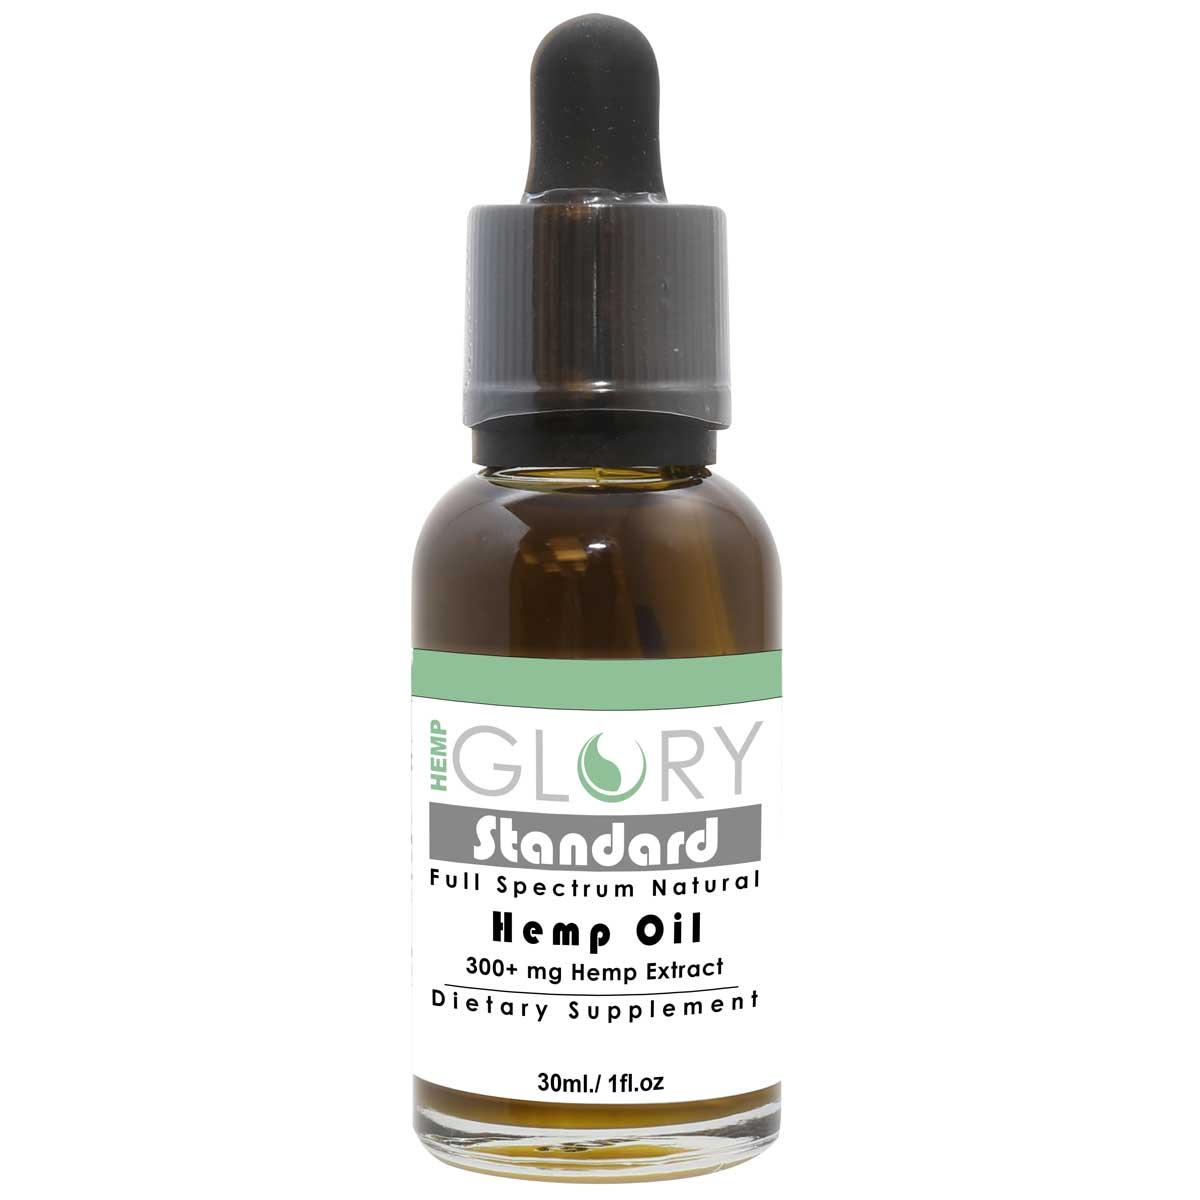 HempGlory Standard 30mL 300mg Hemp Oil Tincture